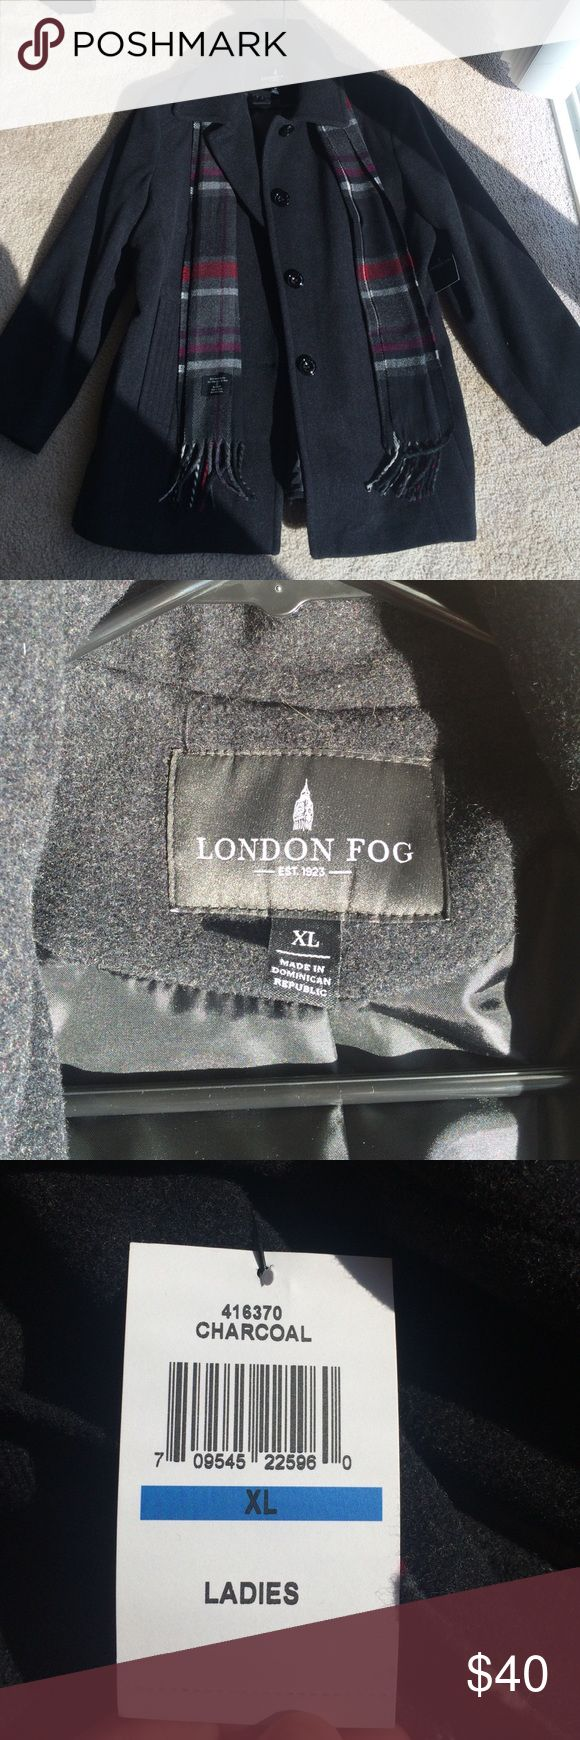 Women's peacoat Women's charcoal peacoat. London Fog. Never been worn. Tags still attached. Scarf included. Just in time for winter! ❄️☃ London Fog Jackets & Coats Pea Coats